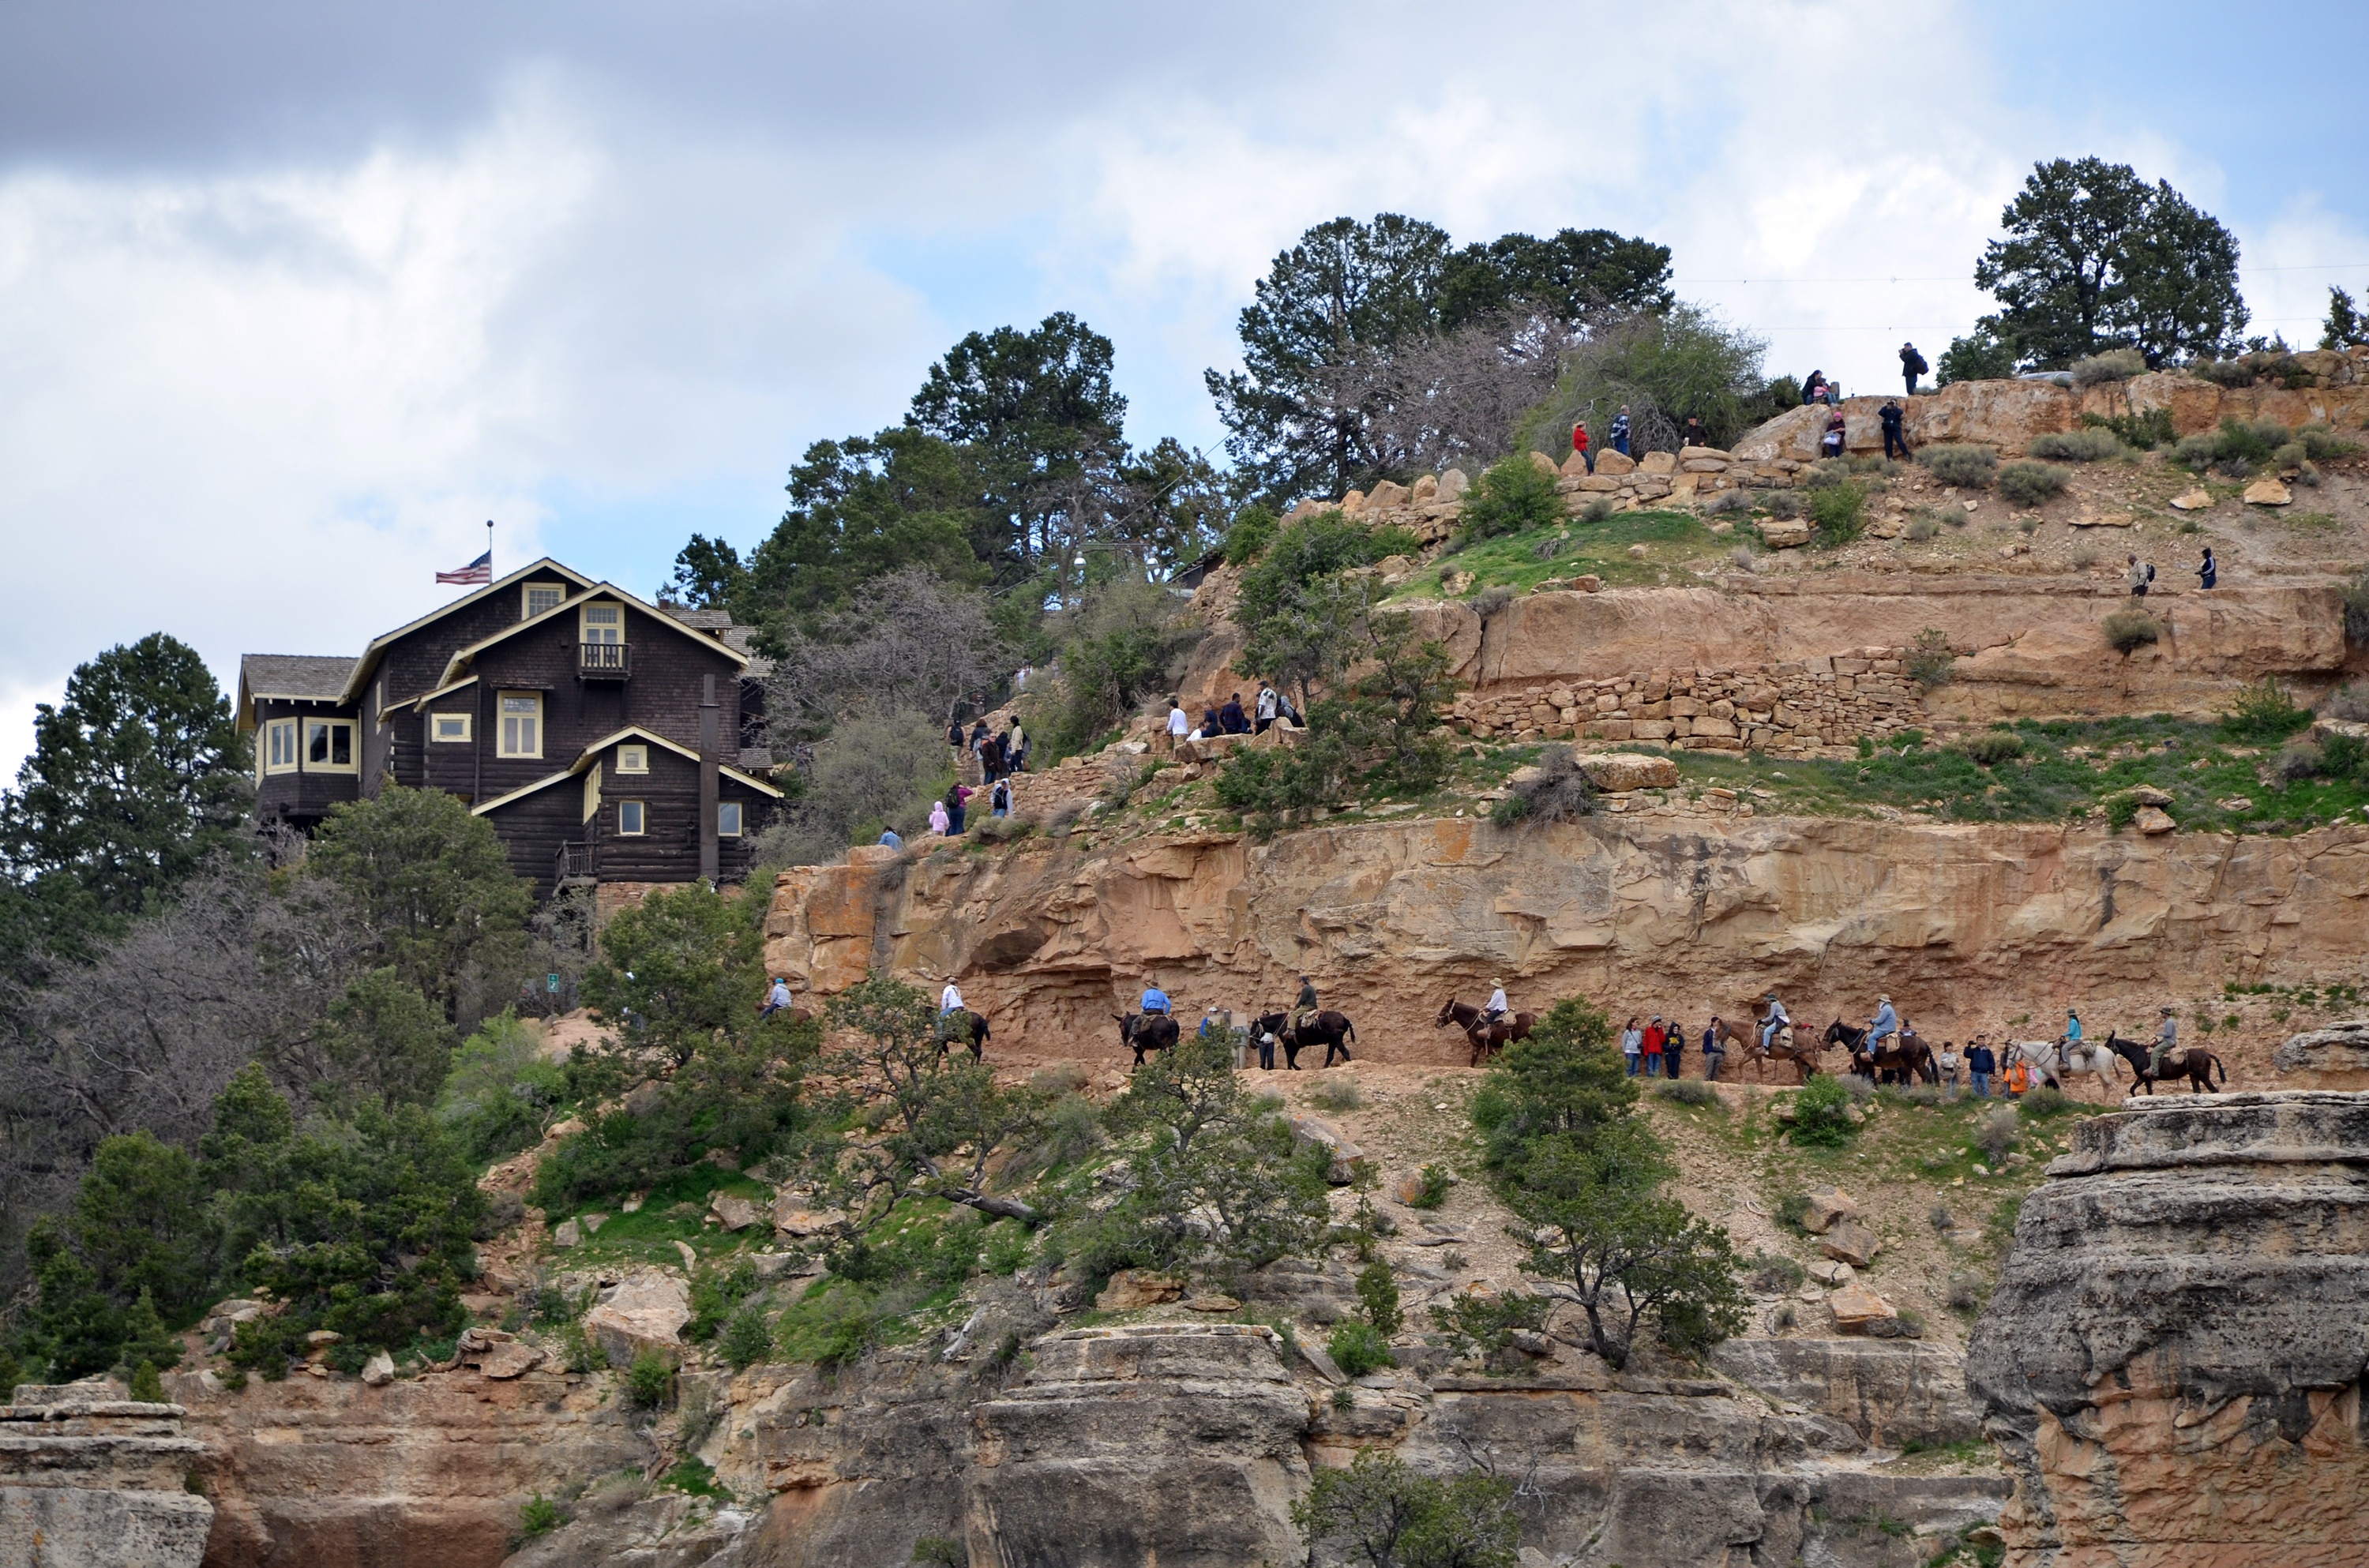 Hikers and Mule Riders reaching the top of the Bright Angel Trail on the South Rim. Kolb Studio (left) is part of Grand Canyon National Park's Historic District: South Rim. Photographers, Ellsworth L. Kolb and Emery C. Kolb played an important role in the early development of visitor services to the Grand Canyon. Ellsworth and Emery came to the Canyon in 1902. Ellsworth worked as a bellman in the Bright Angel Hotel. The brothers eventually bought a photographic studio in Williams, Arizona and brought the equipment to the Grand Canyon. Their business started out photographing parties going down the Bright Angel Trail. Because water supplies were limited on the rim of the Canyon, they would photograph the mule passengers then run 4 1/2 miles to Indian Garden where they had set up a photographic lab. Water was available here for processing the film. Then they returned to the rim of the Canyon with the processed pictures ready for the mule passengers on their return. Kolb Studio was constructed on this site from 1904 through 1926. It was a 2 1/2 story structure with the upper level on the rim of the Canyon. This building saw 23 years of expansion and alterations that brought it to its present day appearance. Grand Canyon National Park, 2011 | NPS Photo by Michael Quinn, St. George News